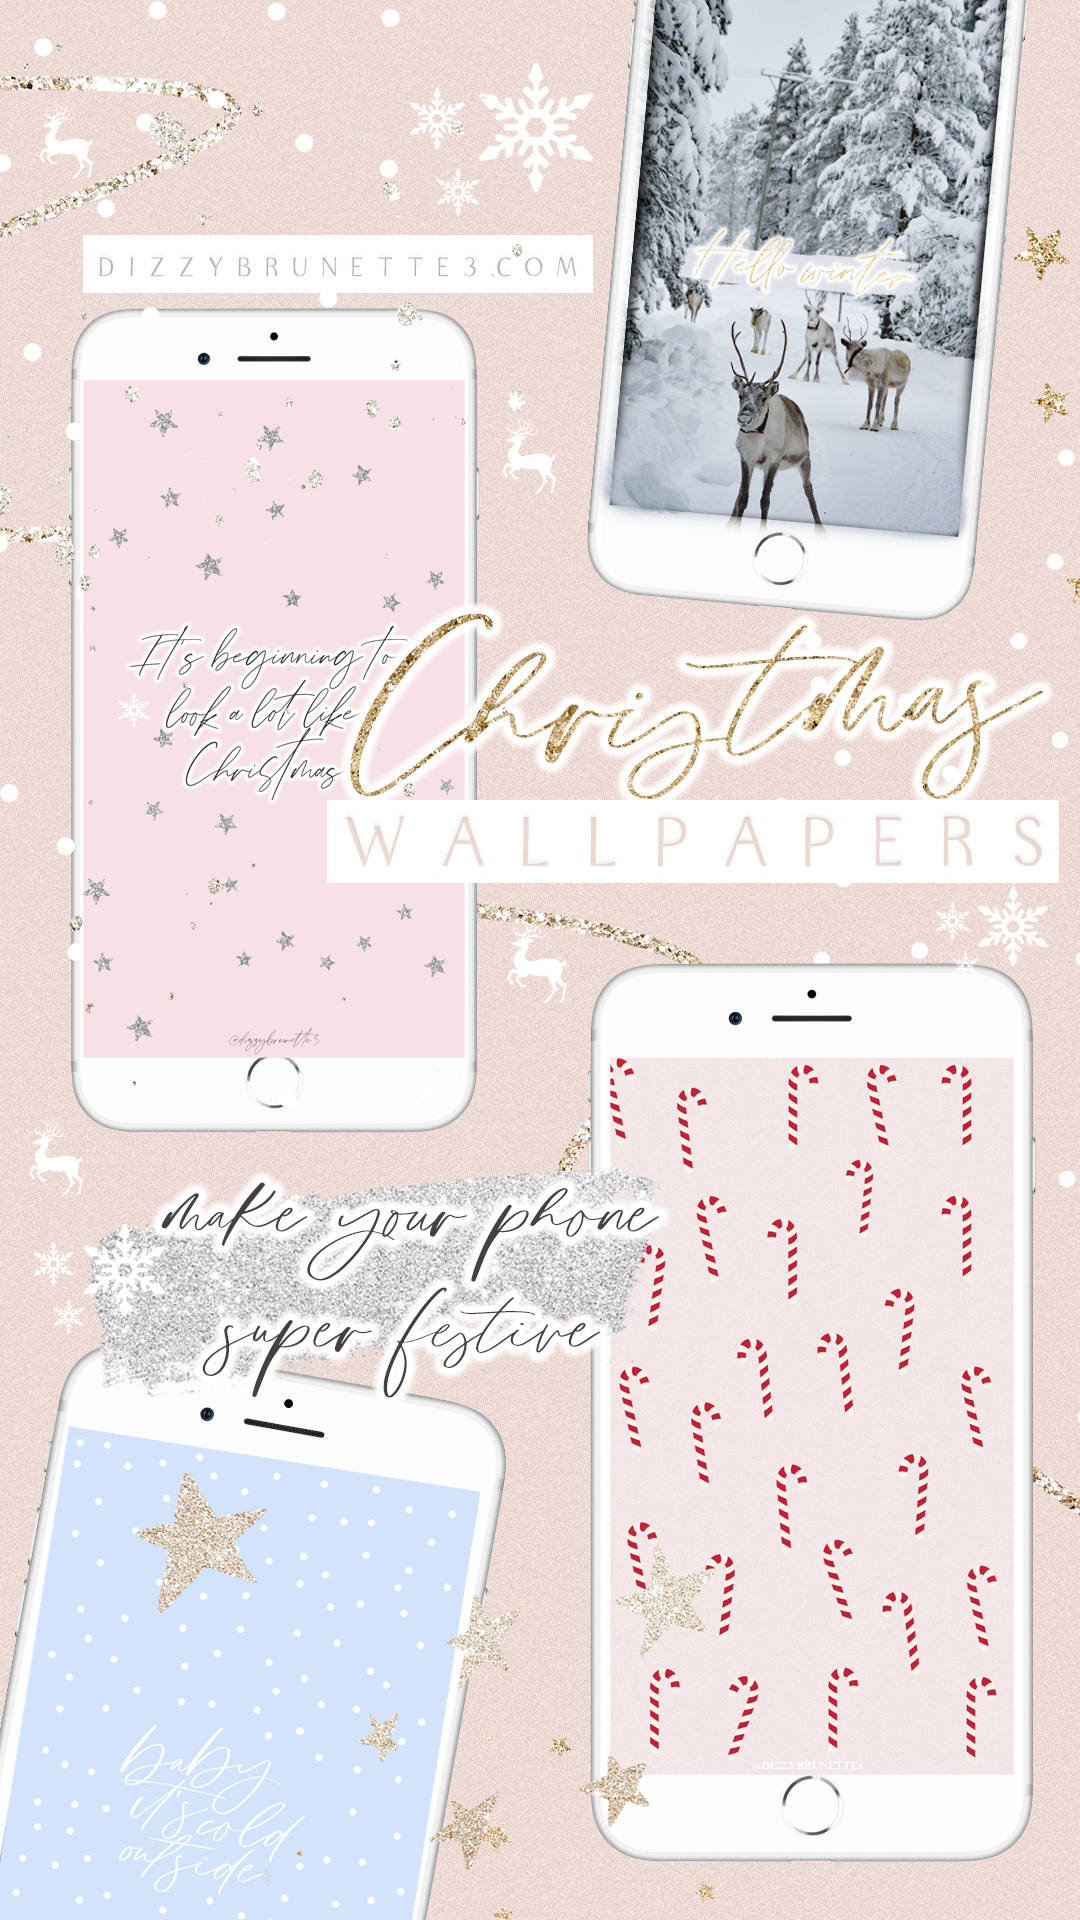 free christmas wallpapers, christmas phone wallpapers, phone wallpapers, dizzybrunette3 wallpapers